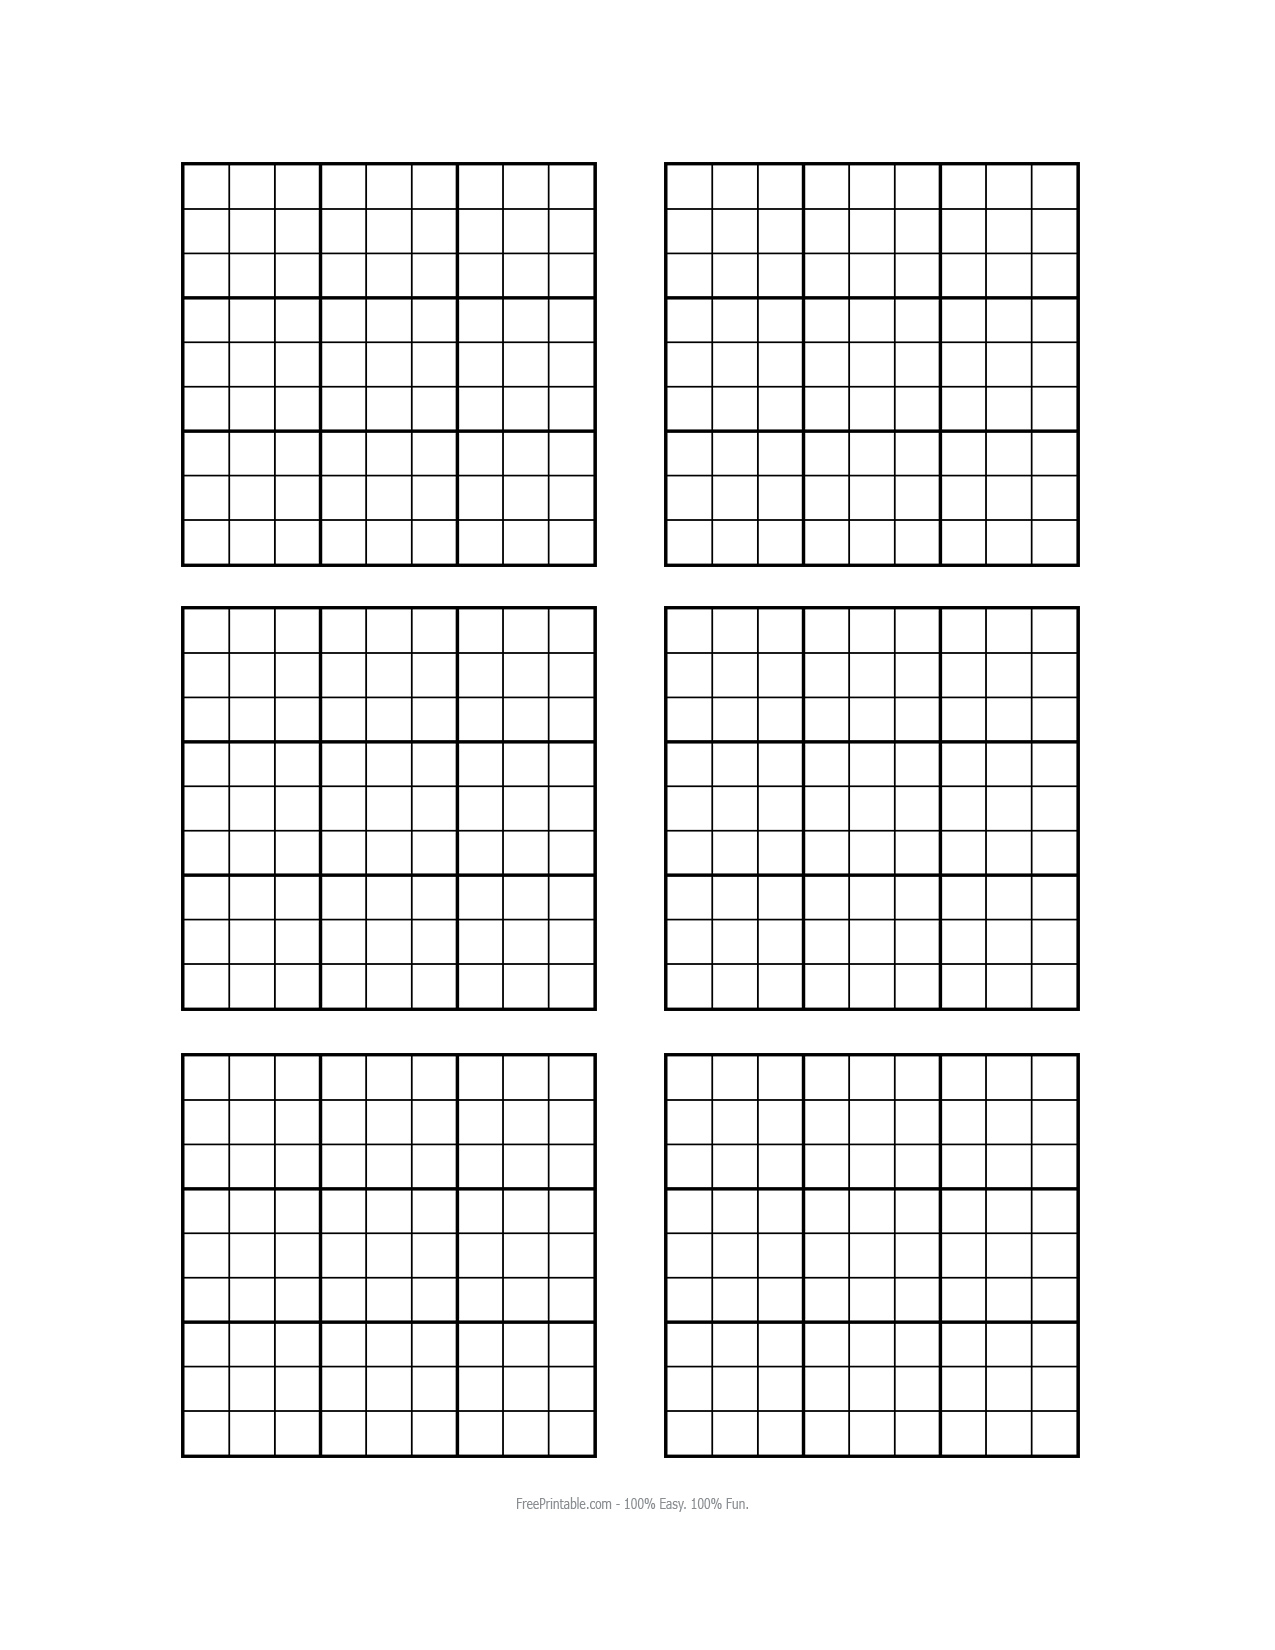 Enterprising image intended for printable sudoku grids